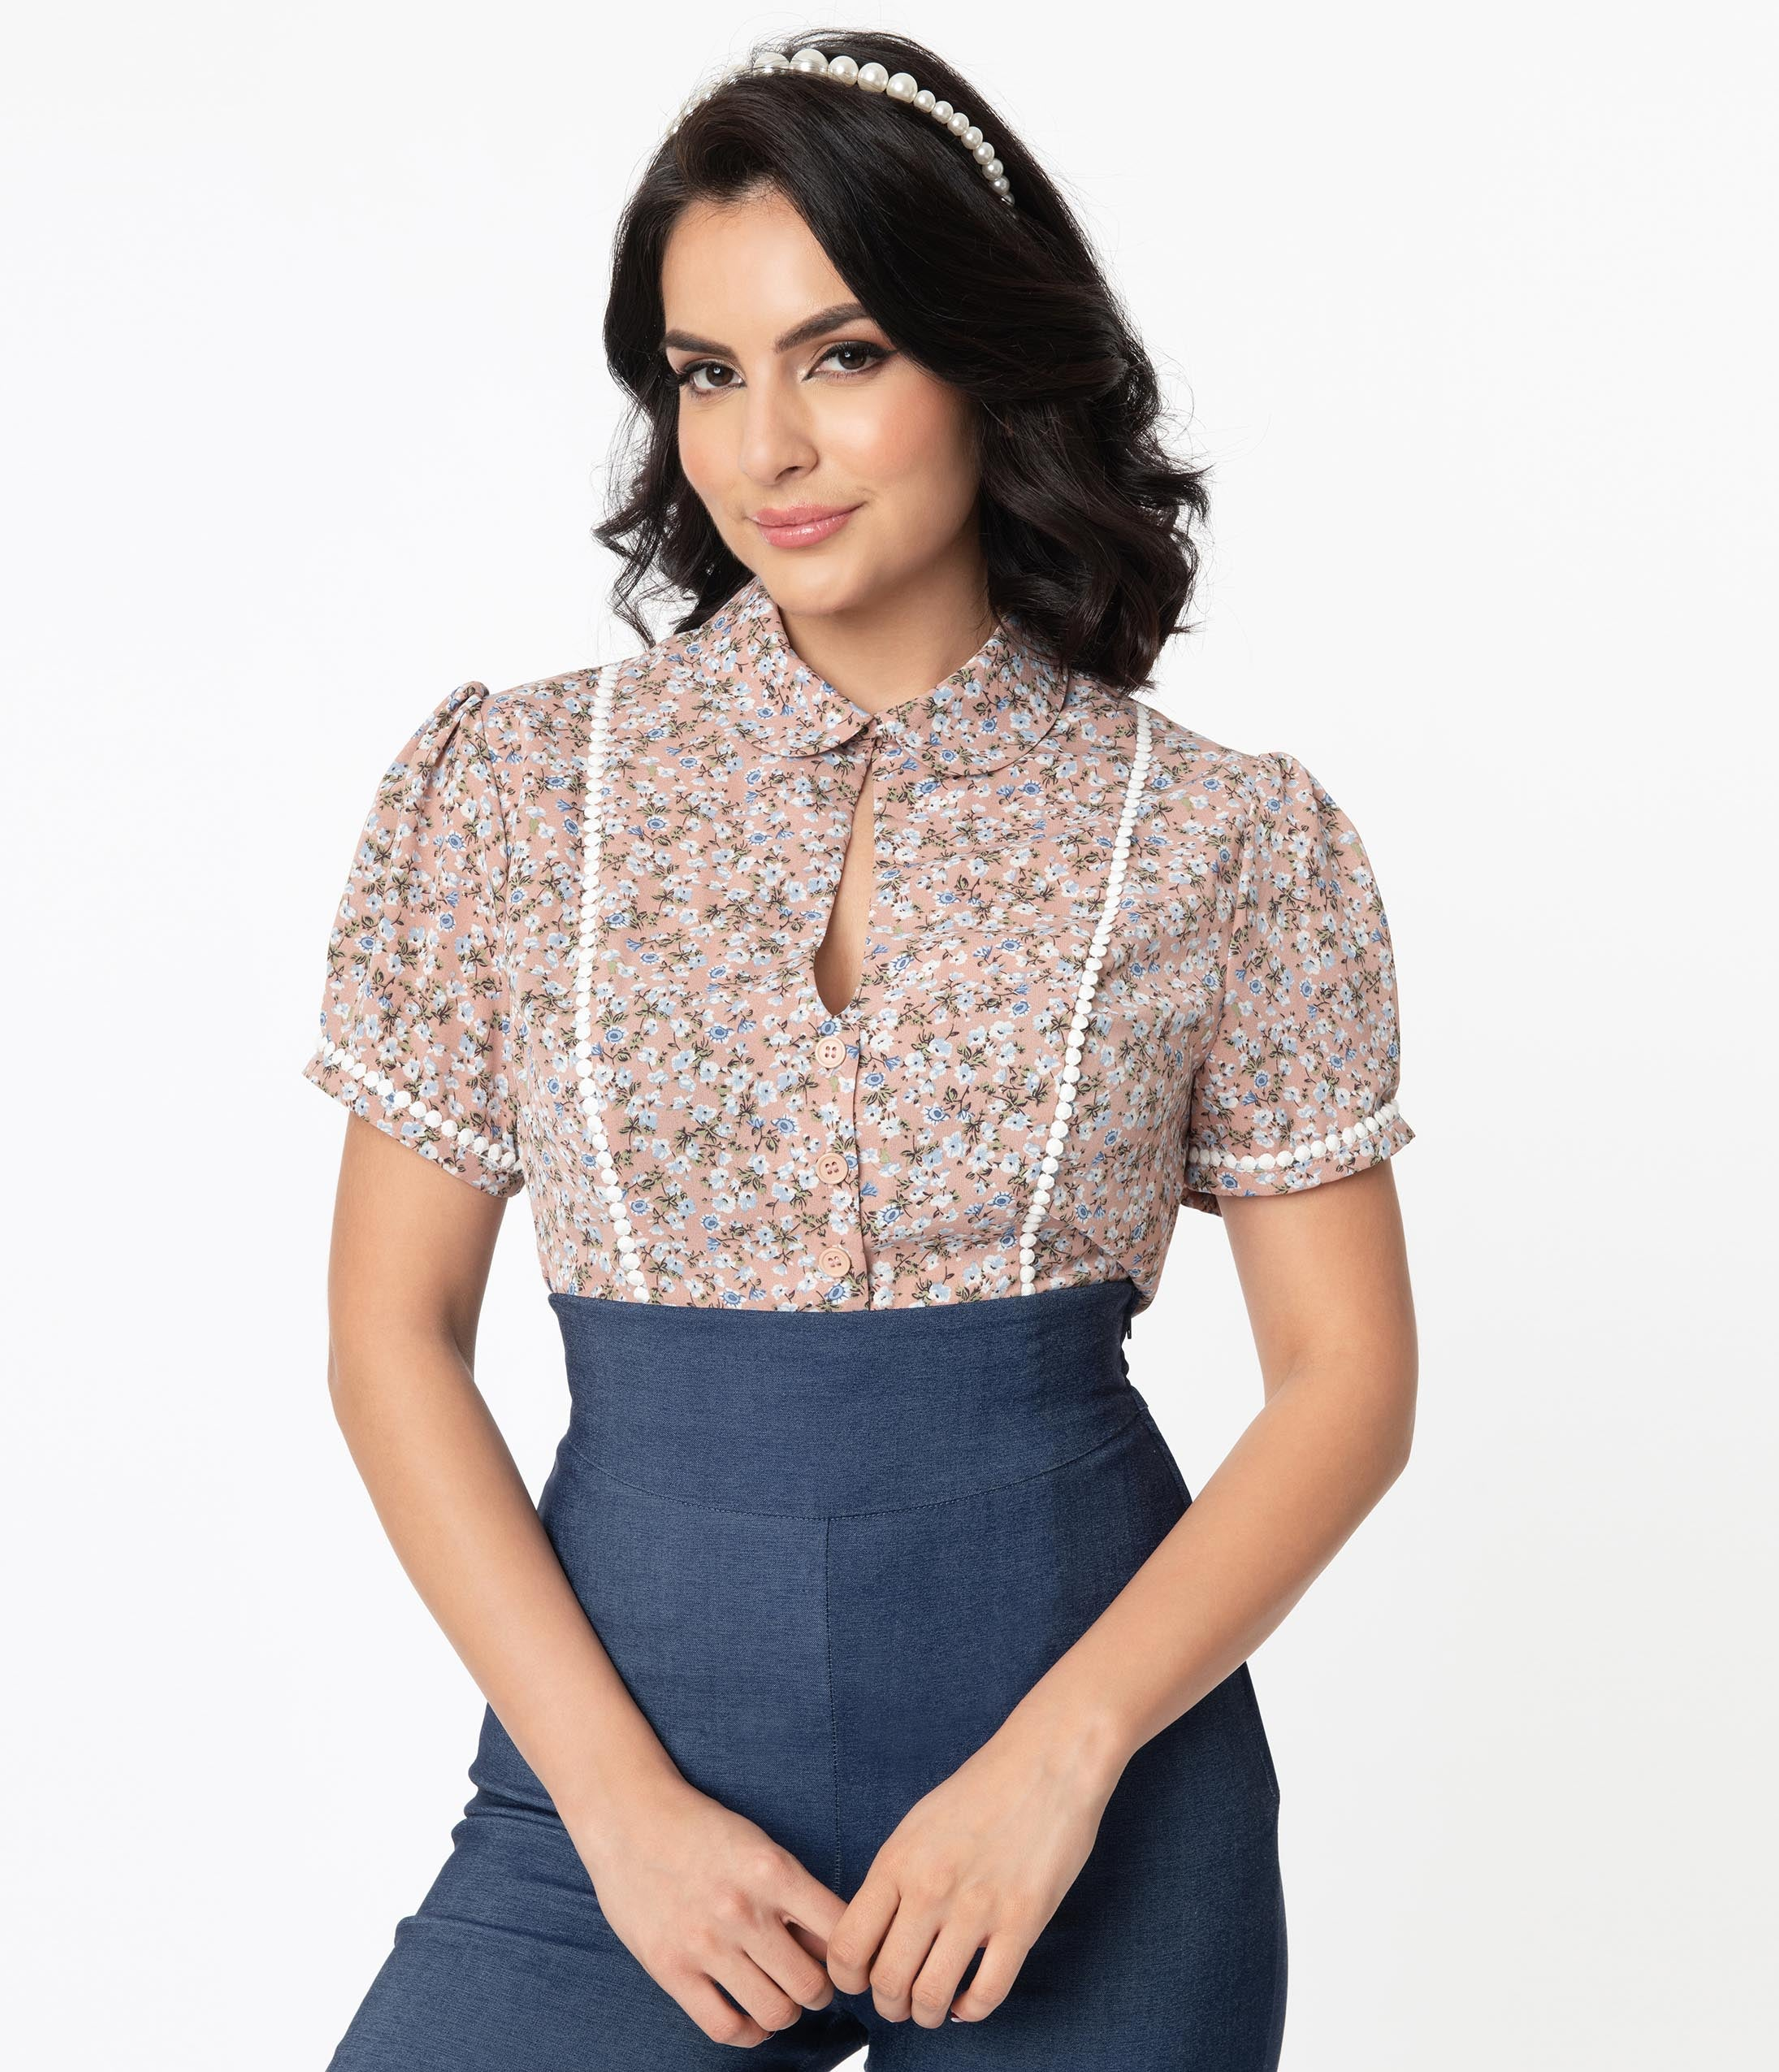 1940s Style Clothing & 40s Fashion Unique Vintage Dusty Pink  Blue Ditsy Floral Pinky Top $54.00 AT vintagedancer.com